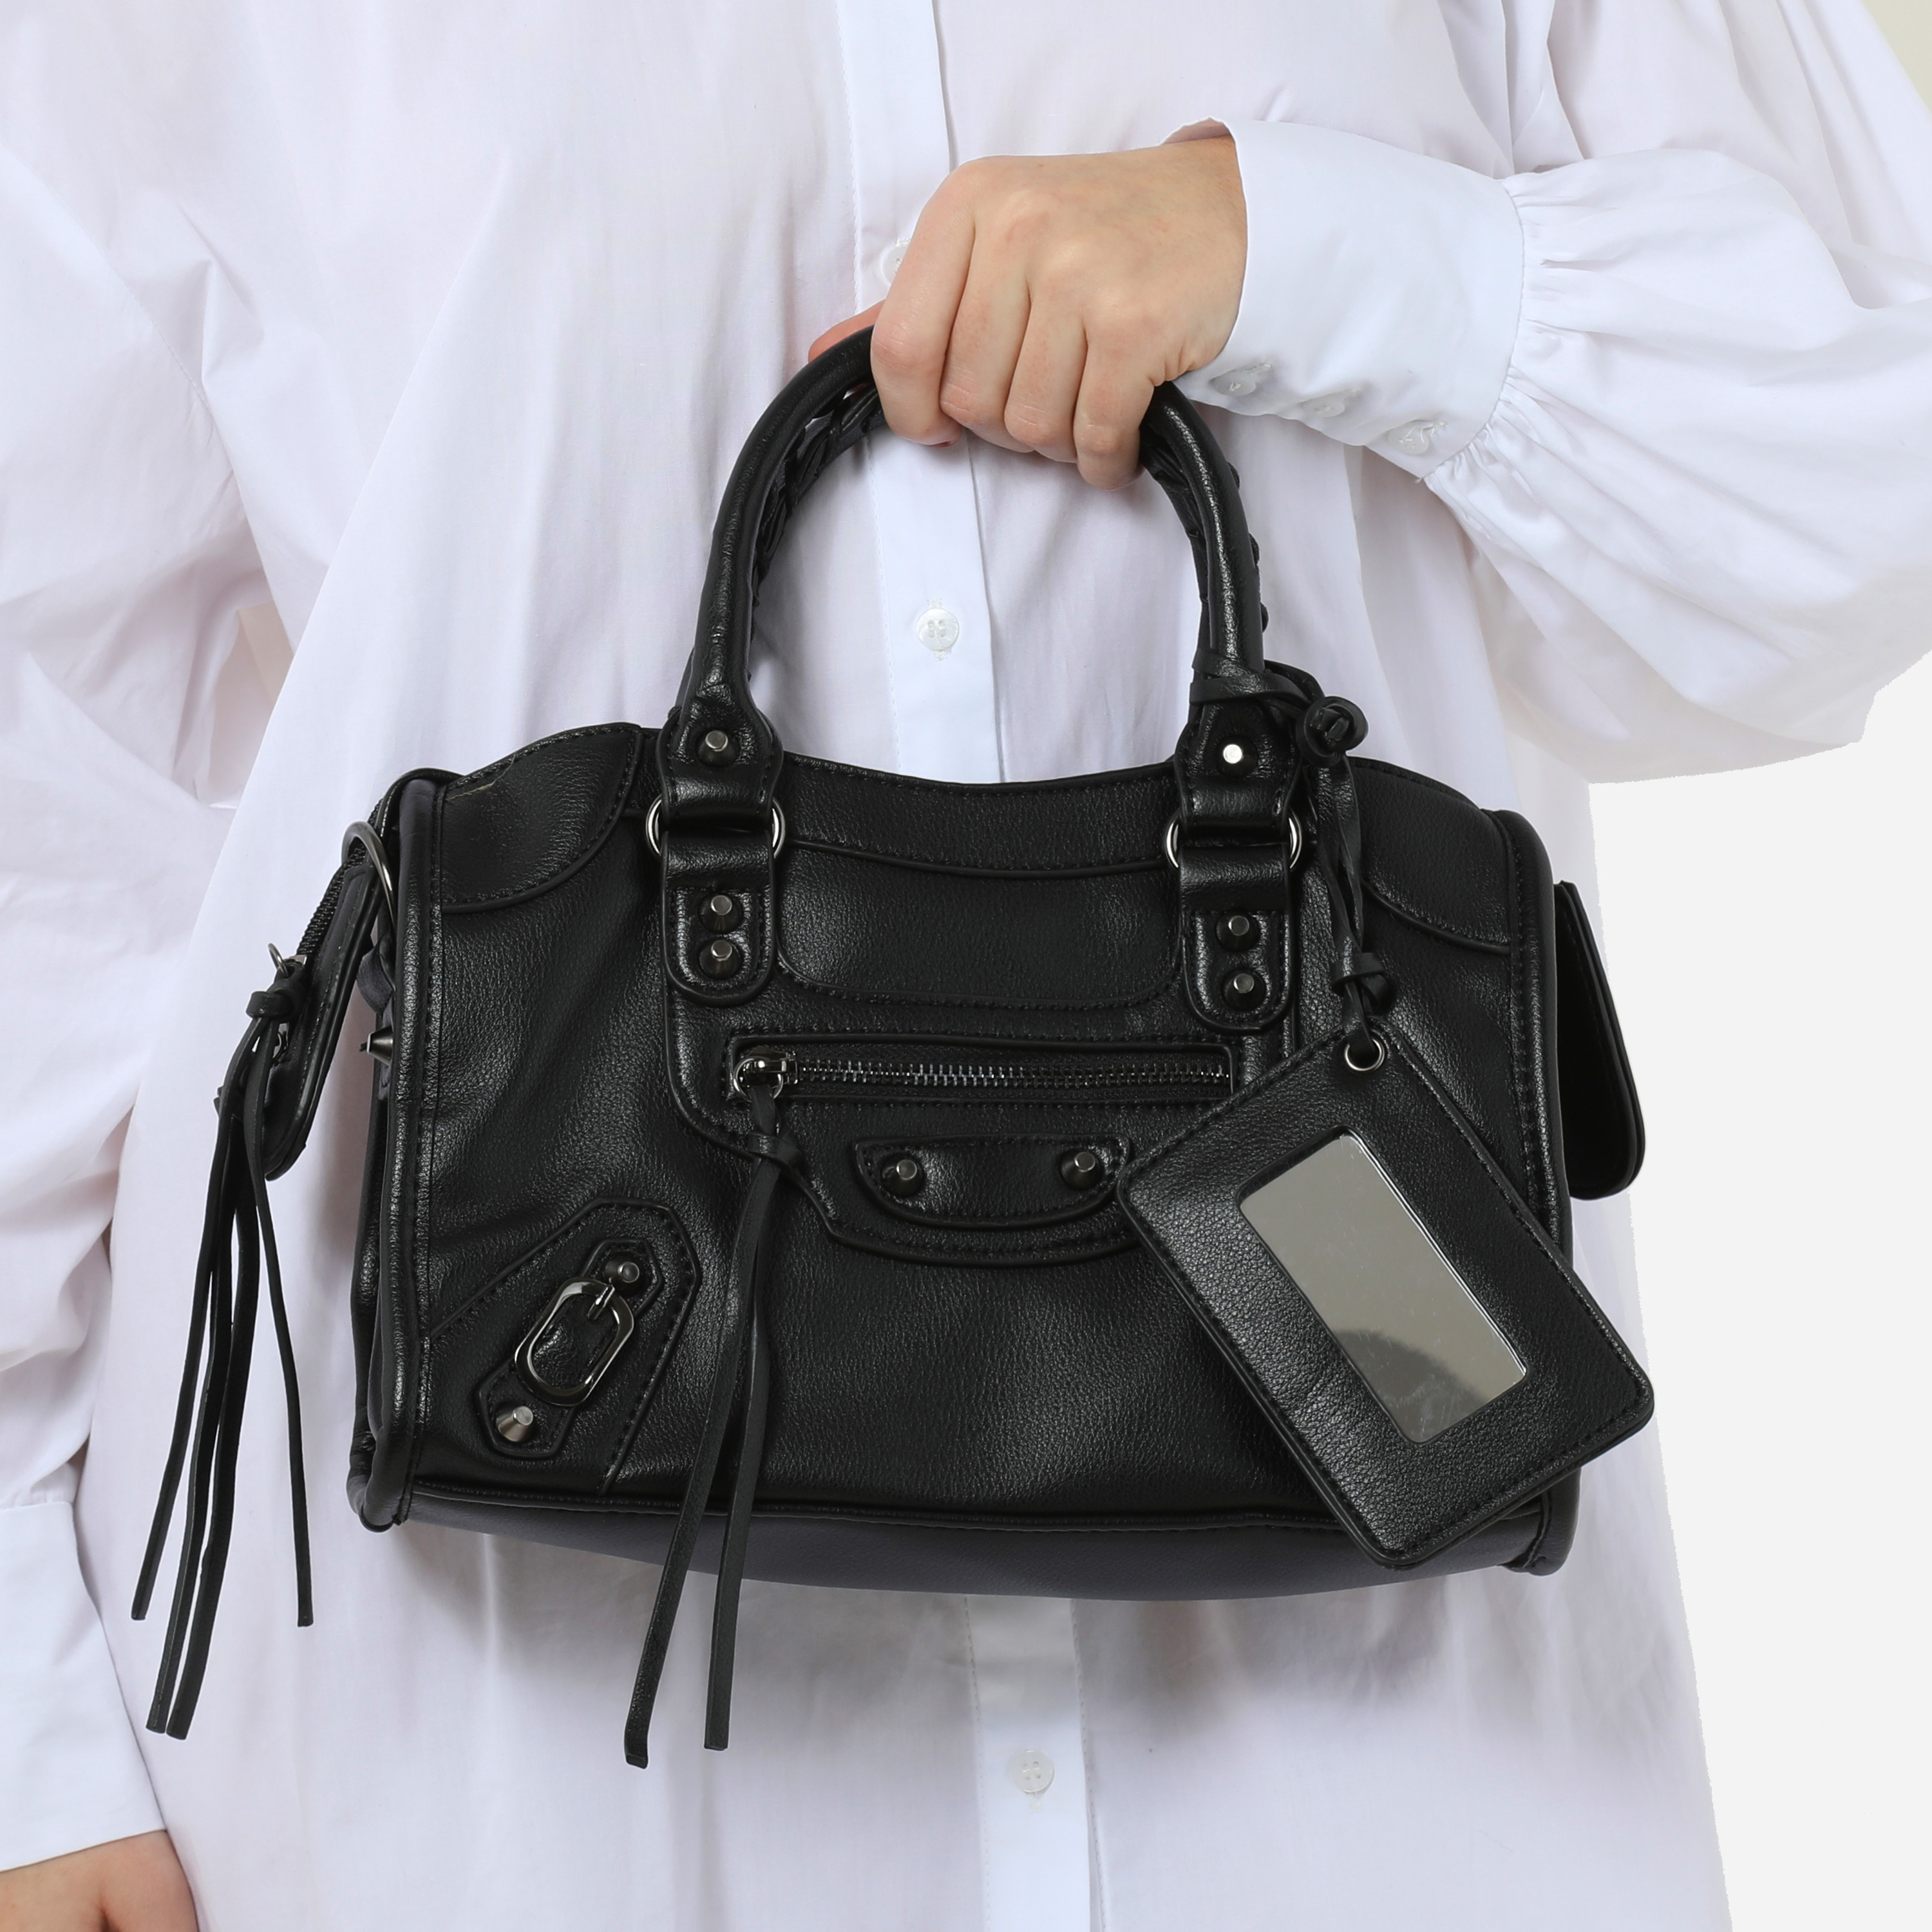 Buckle Detail City Bag In Black Fuax Leather